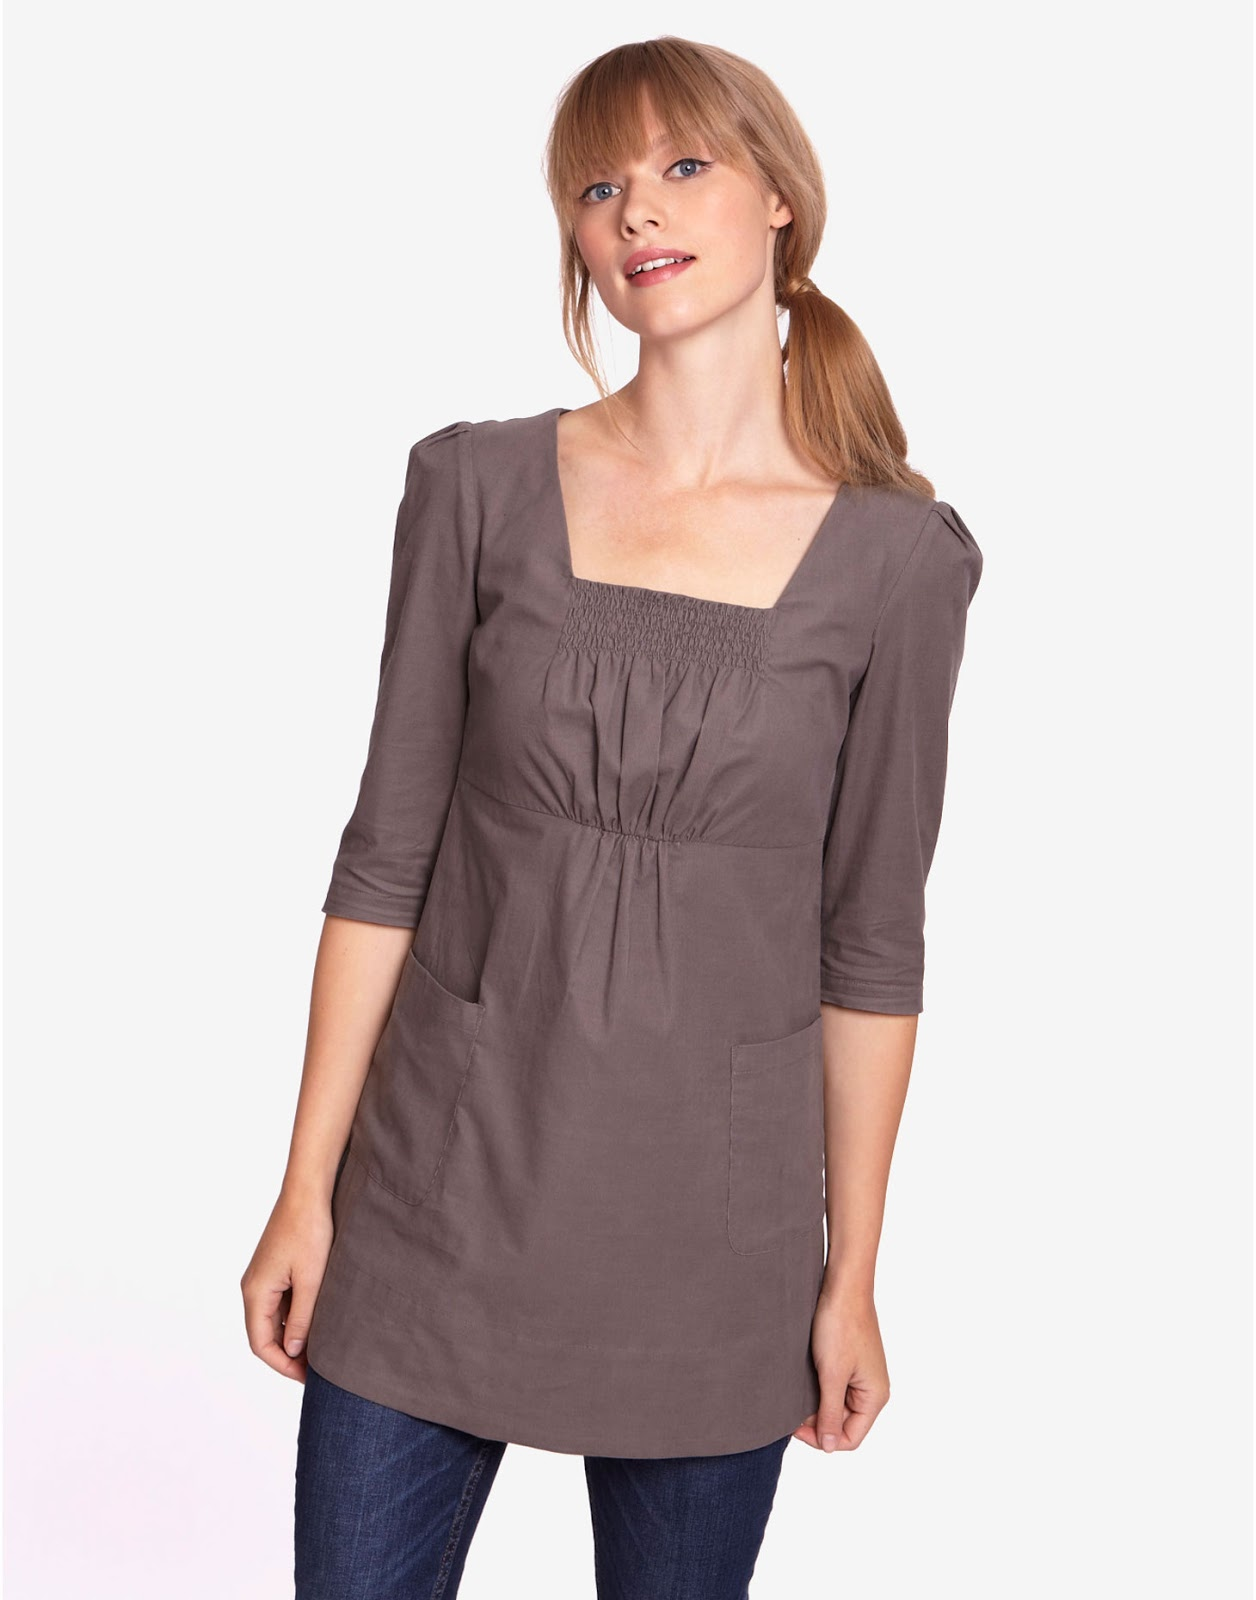 Womens Tunic Tops. Looking for an effortlessly chic wardrobe essential? Check out our terrific selection of women's tunic tops. Whether you're headed to the beach or a fun night out, these stylish standouts are sure to enhance any look.